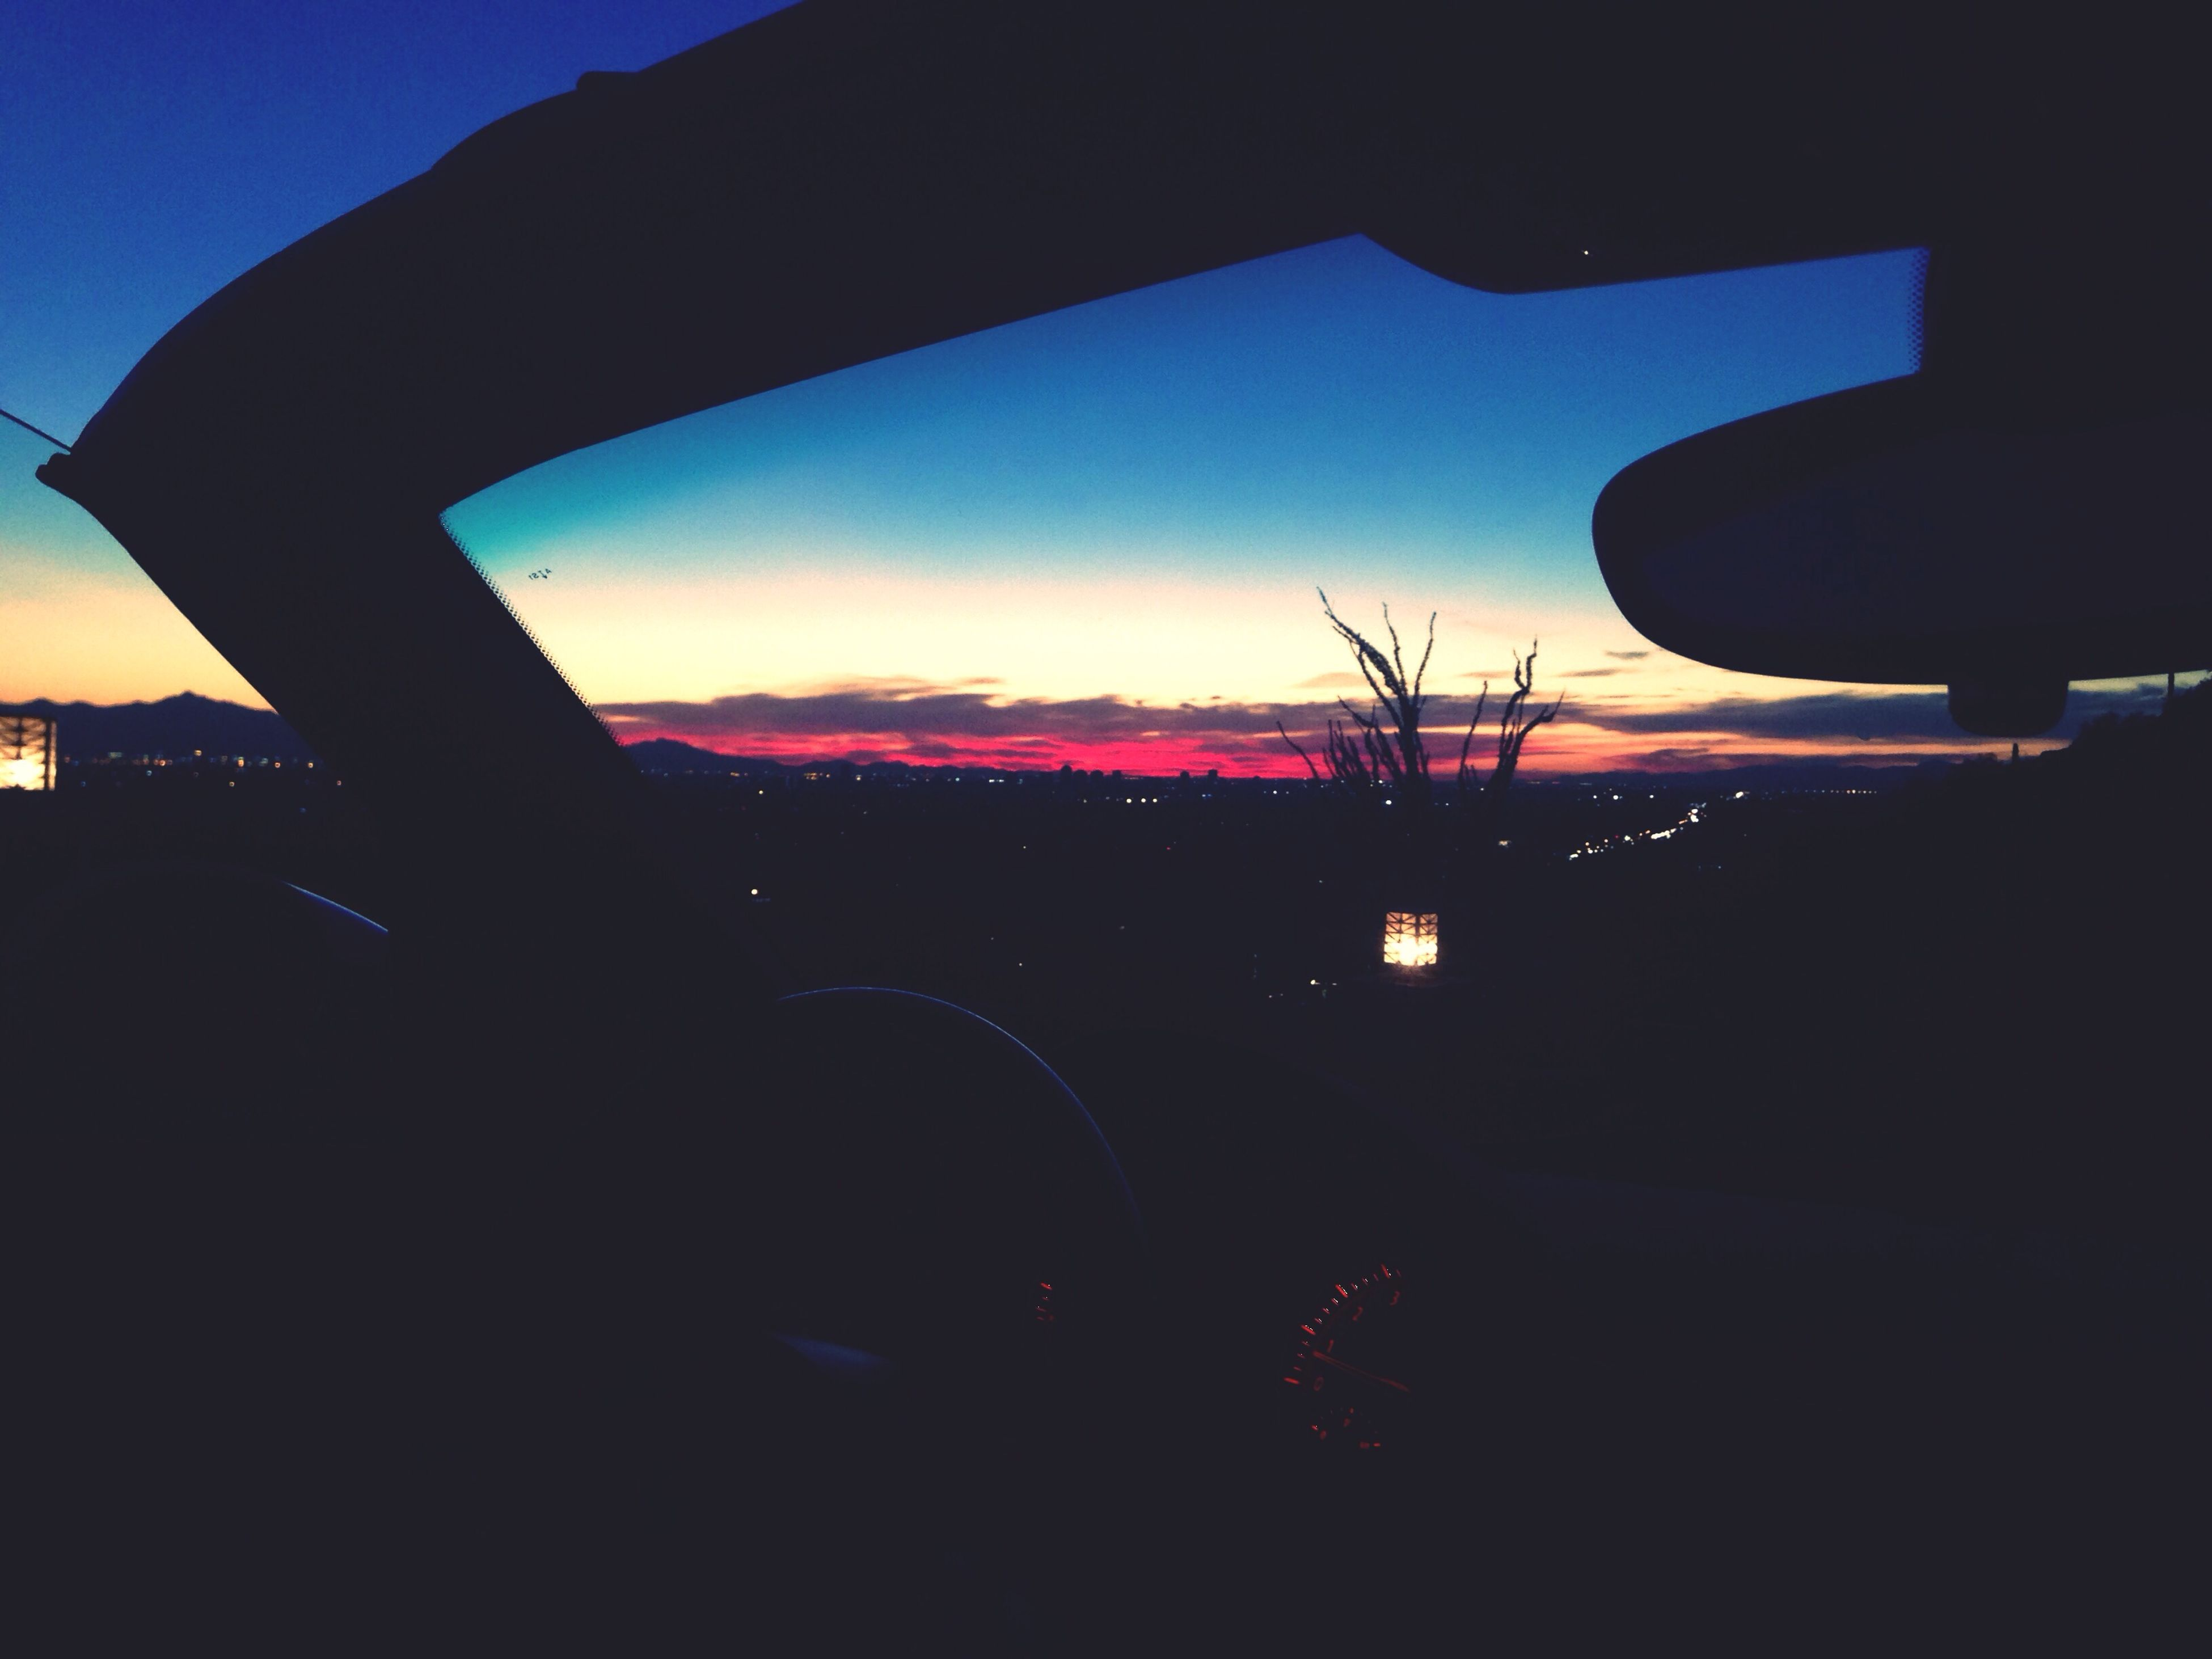 transportation, silhouette, land vehicle, car, sunset, mode of transport, sky, road, vehicle interior, dusk, street, travel, car interior, windshield, side-view mirror, dark, cloud, tree, on the move, cloud - sky